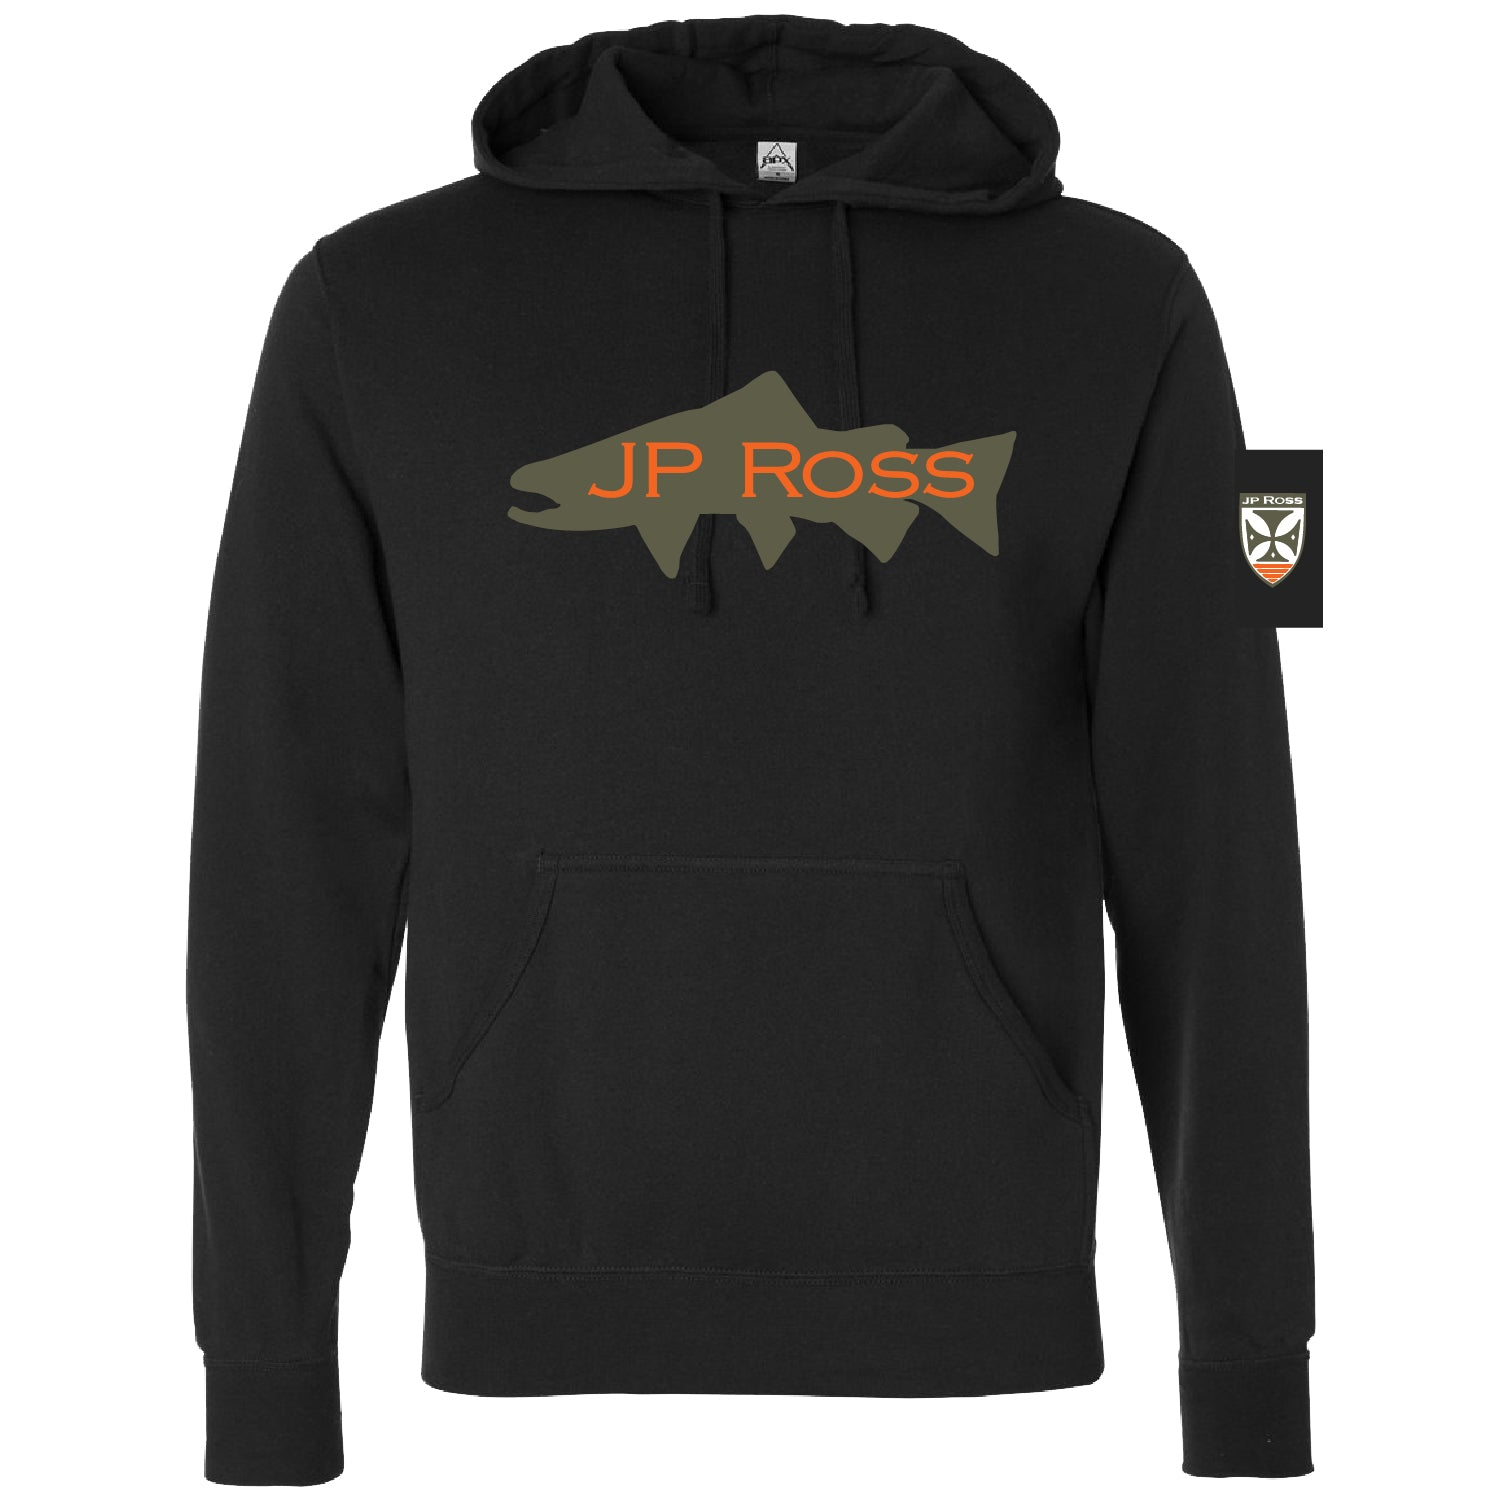 the Rambler TROUT Hoodie